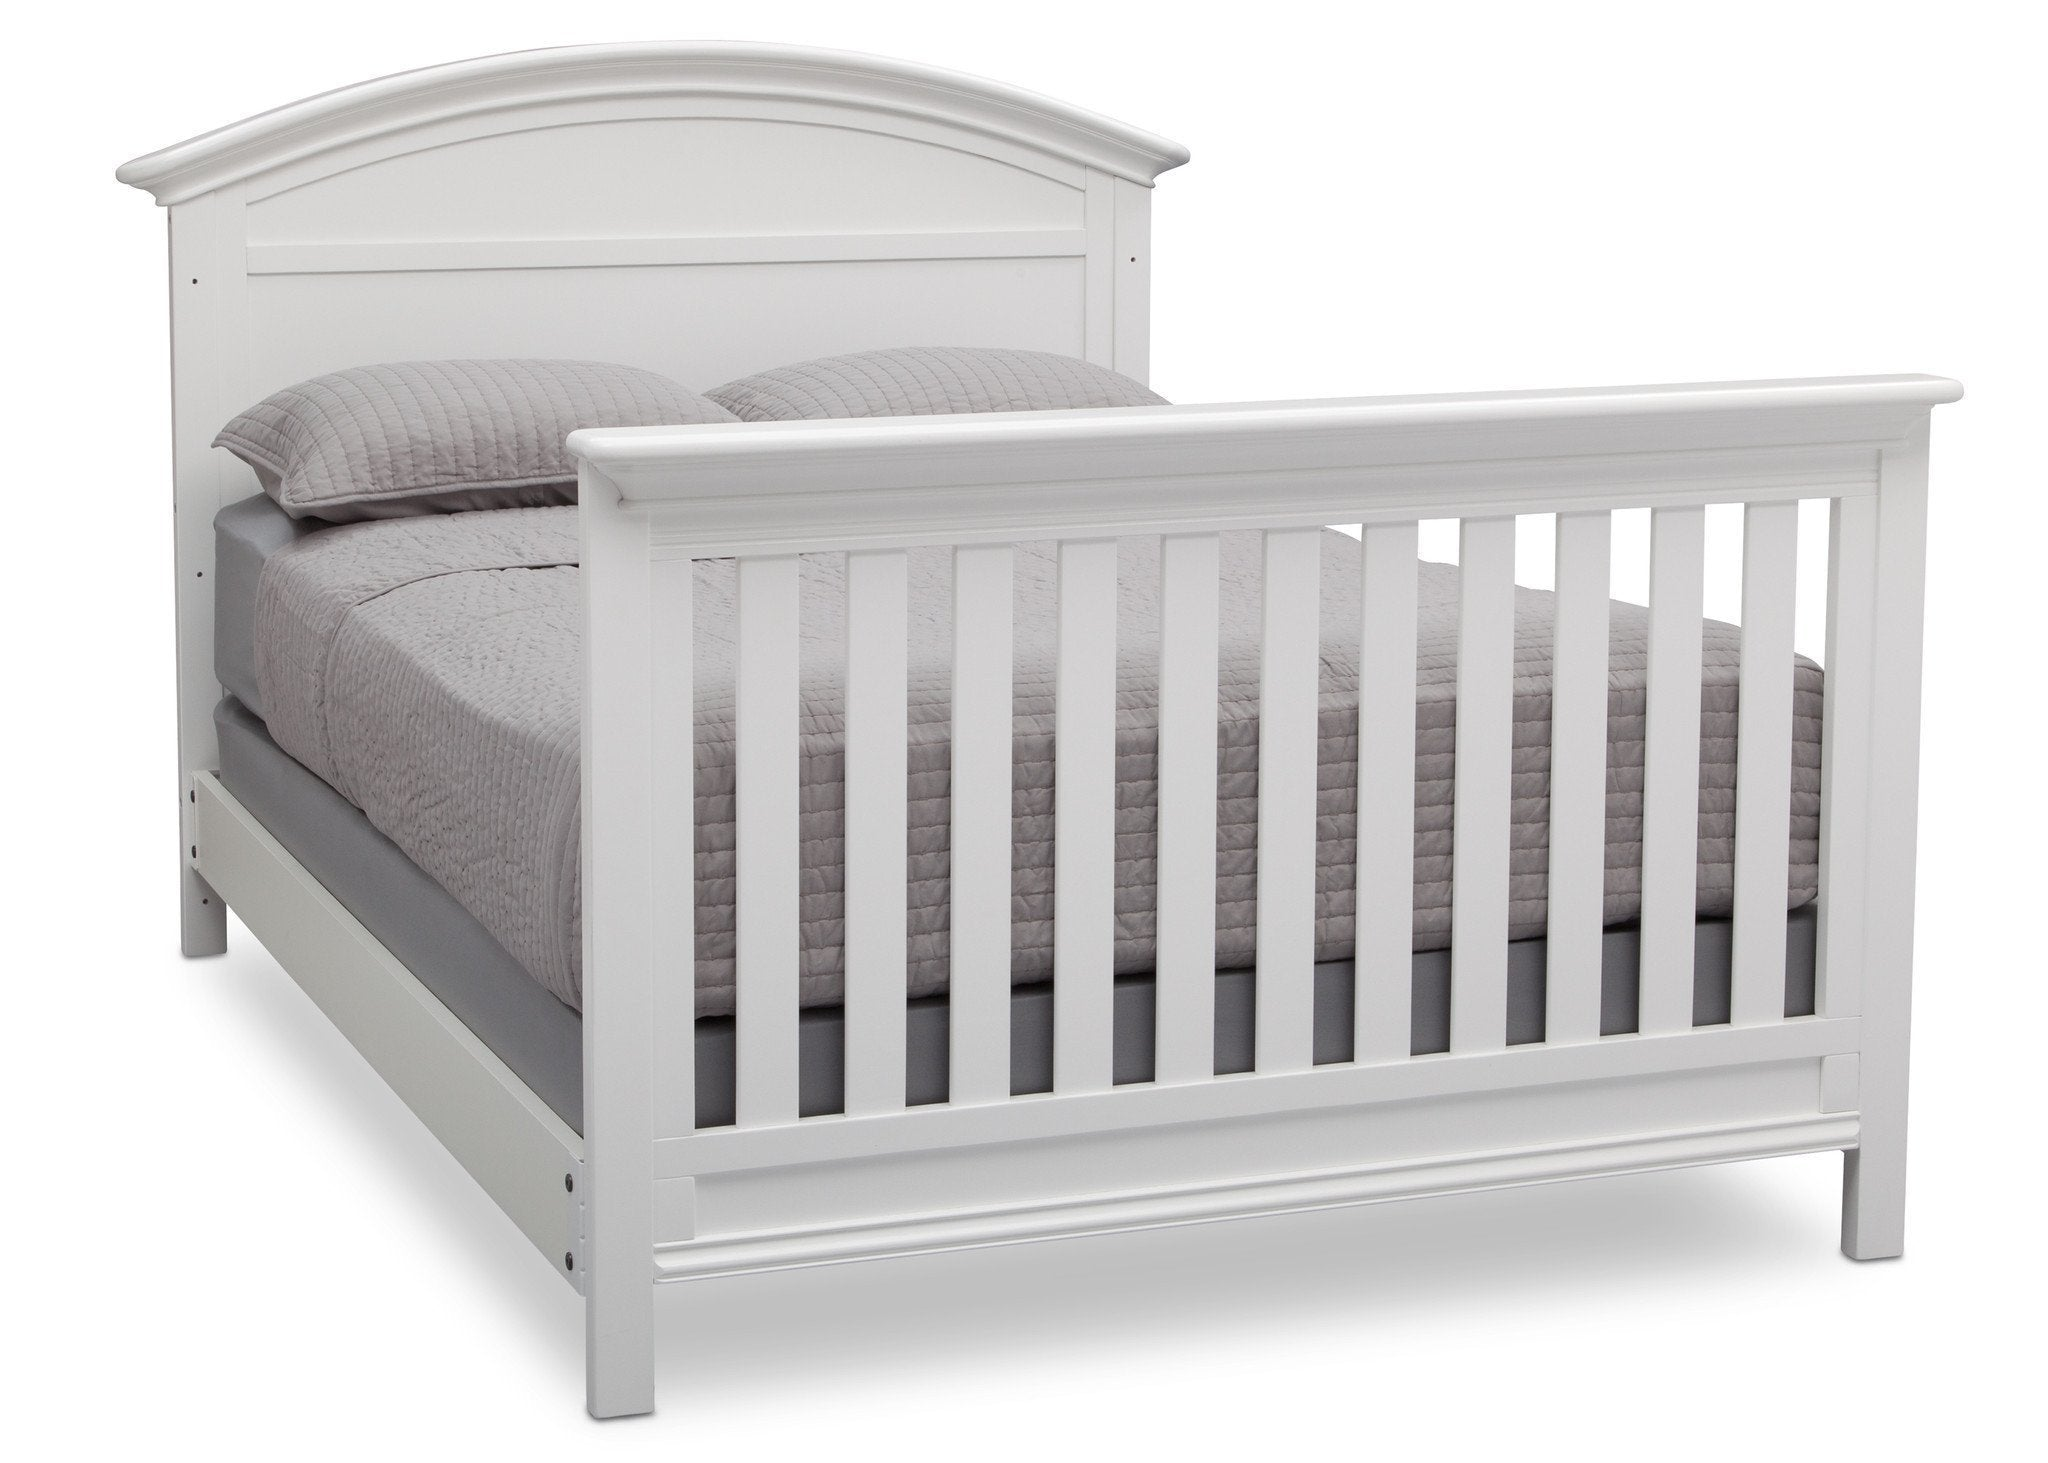 Serta Bianca (130) Adelaide 4-in-1 Crib, Side View with Full Size Platform Bed Kit (for 4-in-1 Cribs) 700850 and Footboard b7b